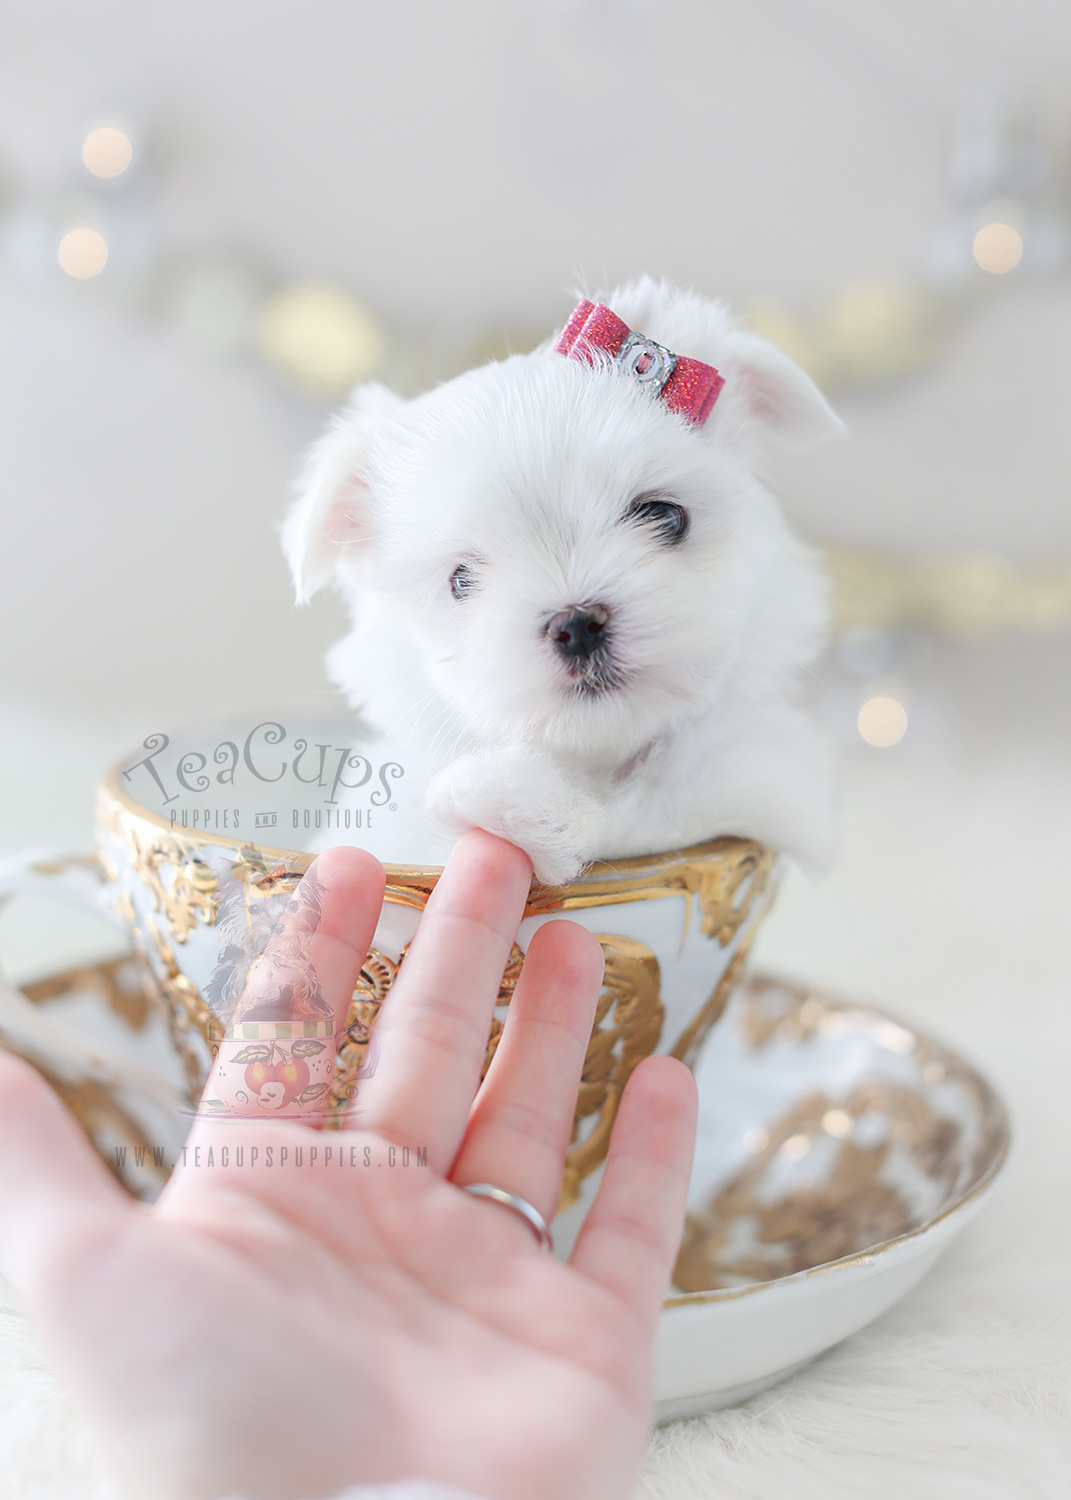 For Sale #361 Teacup Puppies TeaCup Maltese Puppy